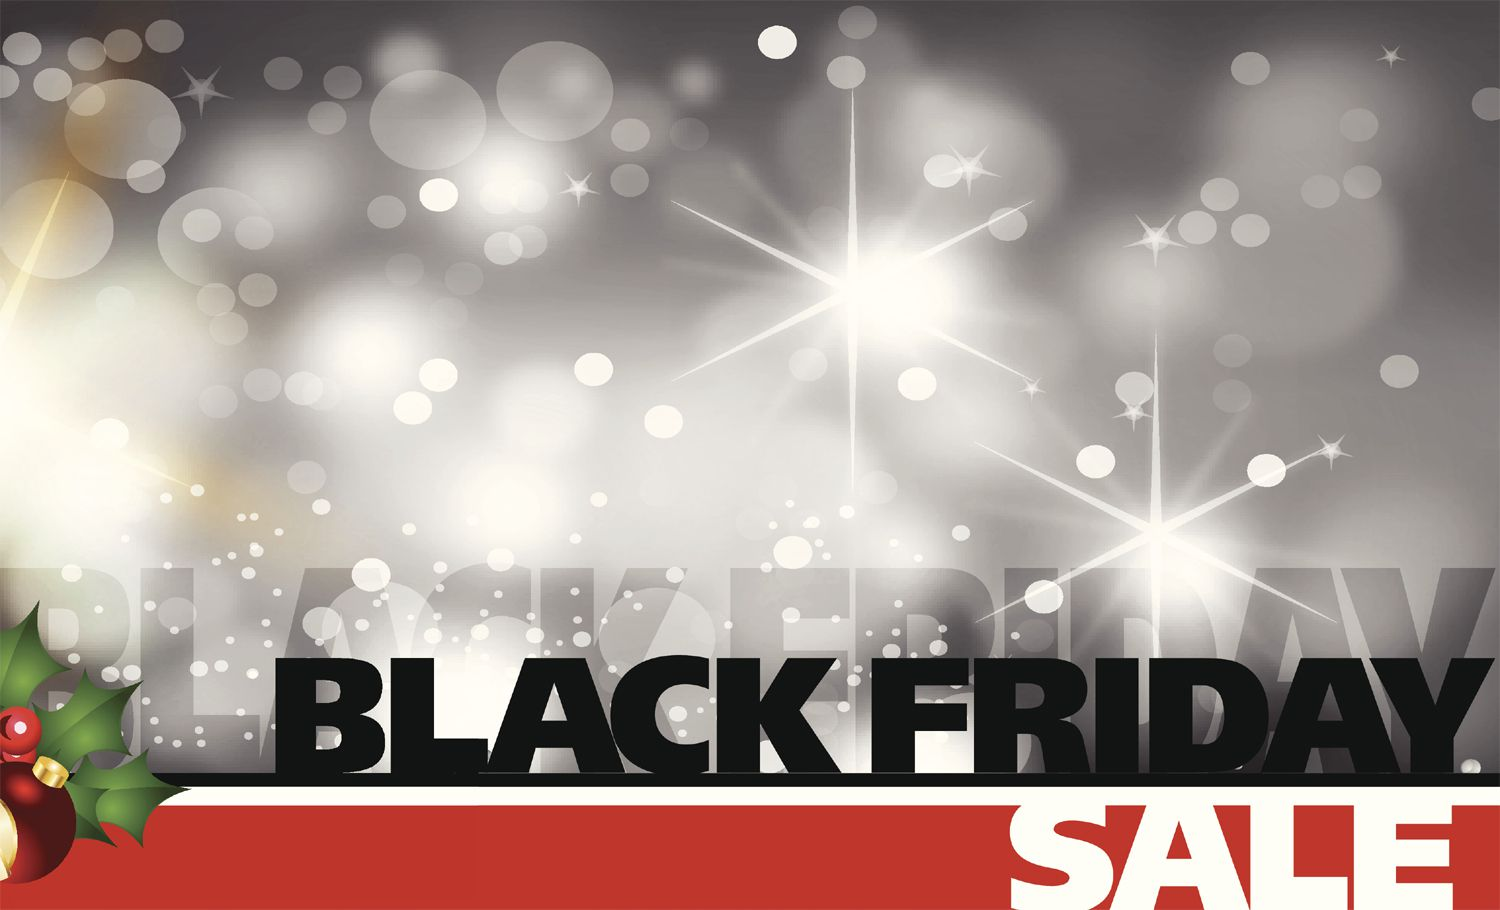 black friday sales at outlet malls in new jersey. Black Bedroom Furniture Sets. Home Design Ideas